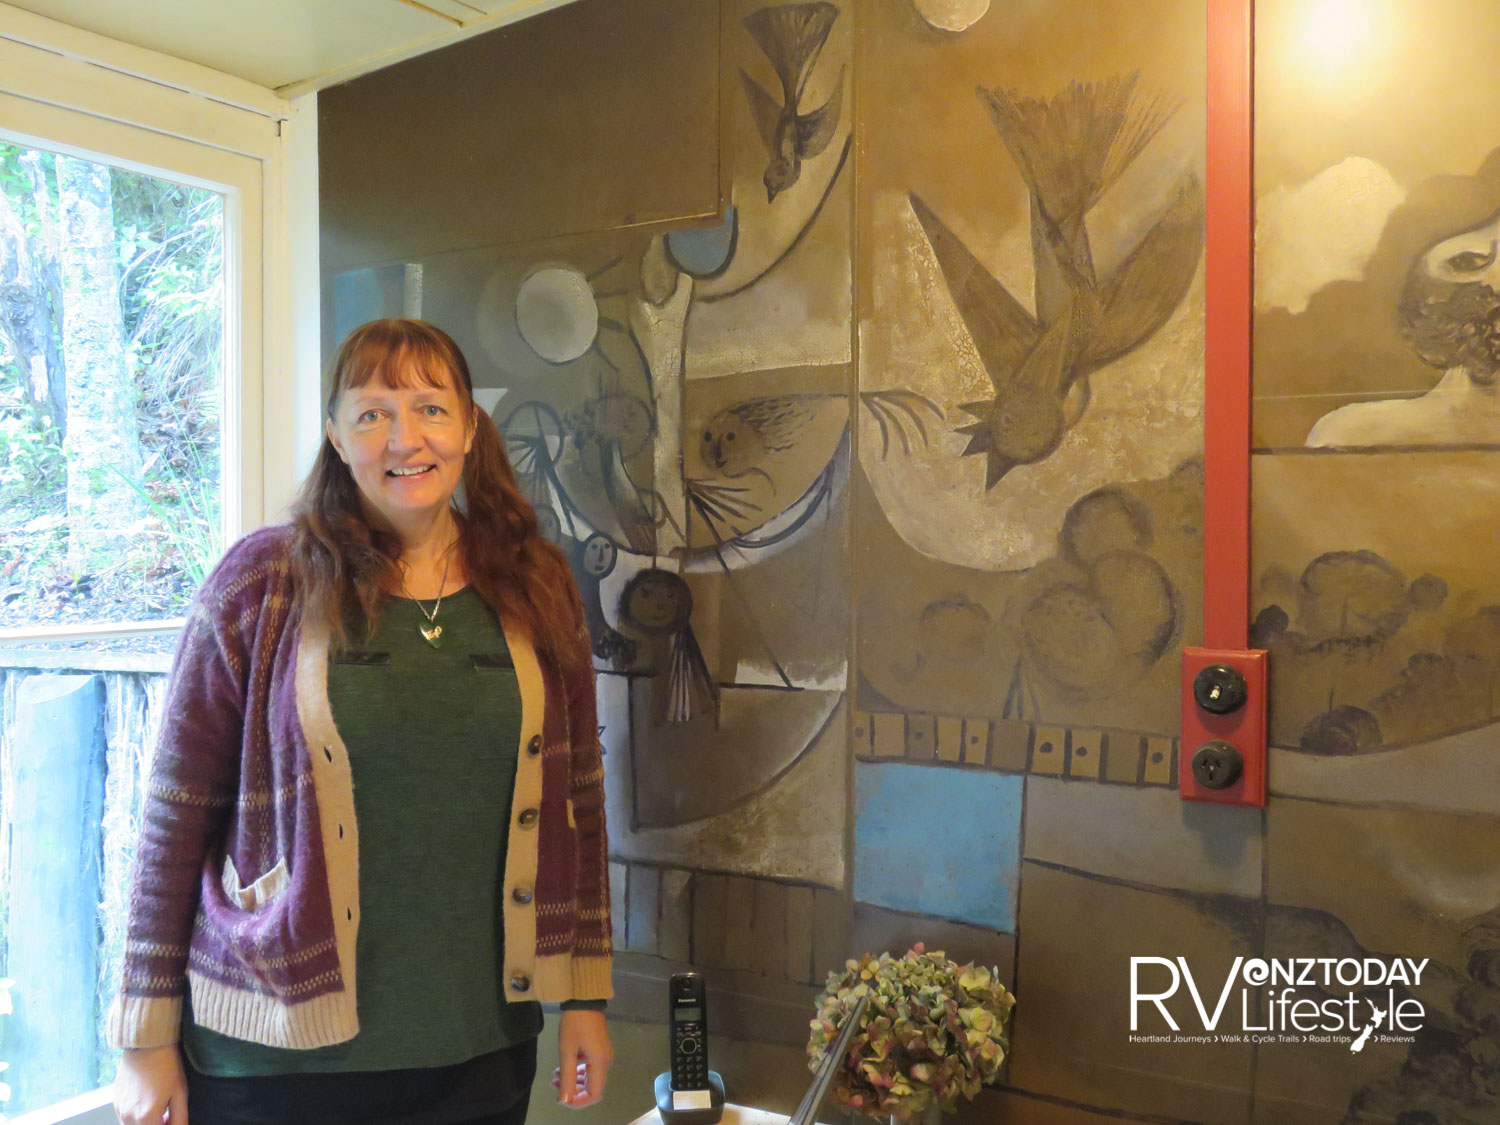 Volunteer Georgina Carlton beside a replica of McCahon's painting in the dining area